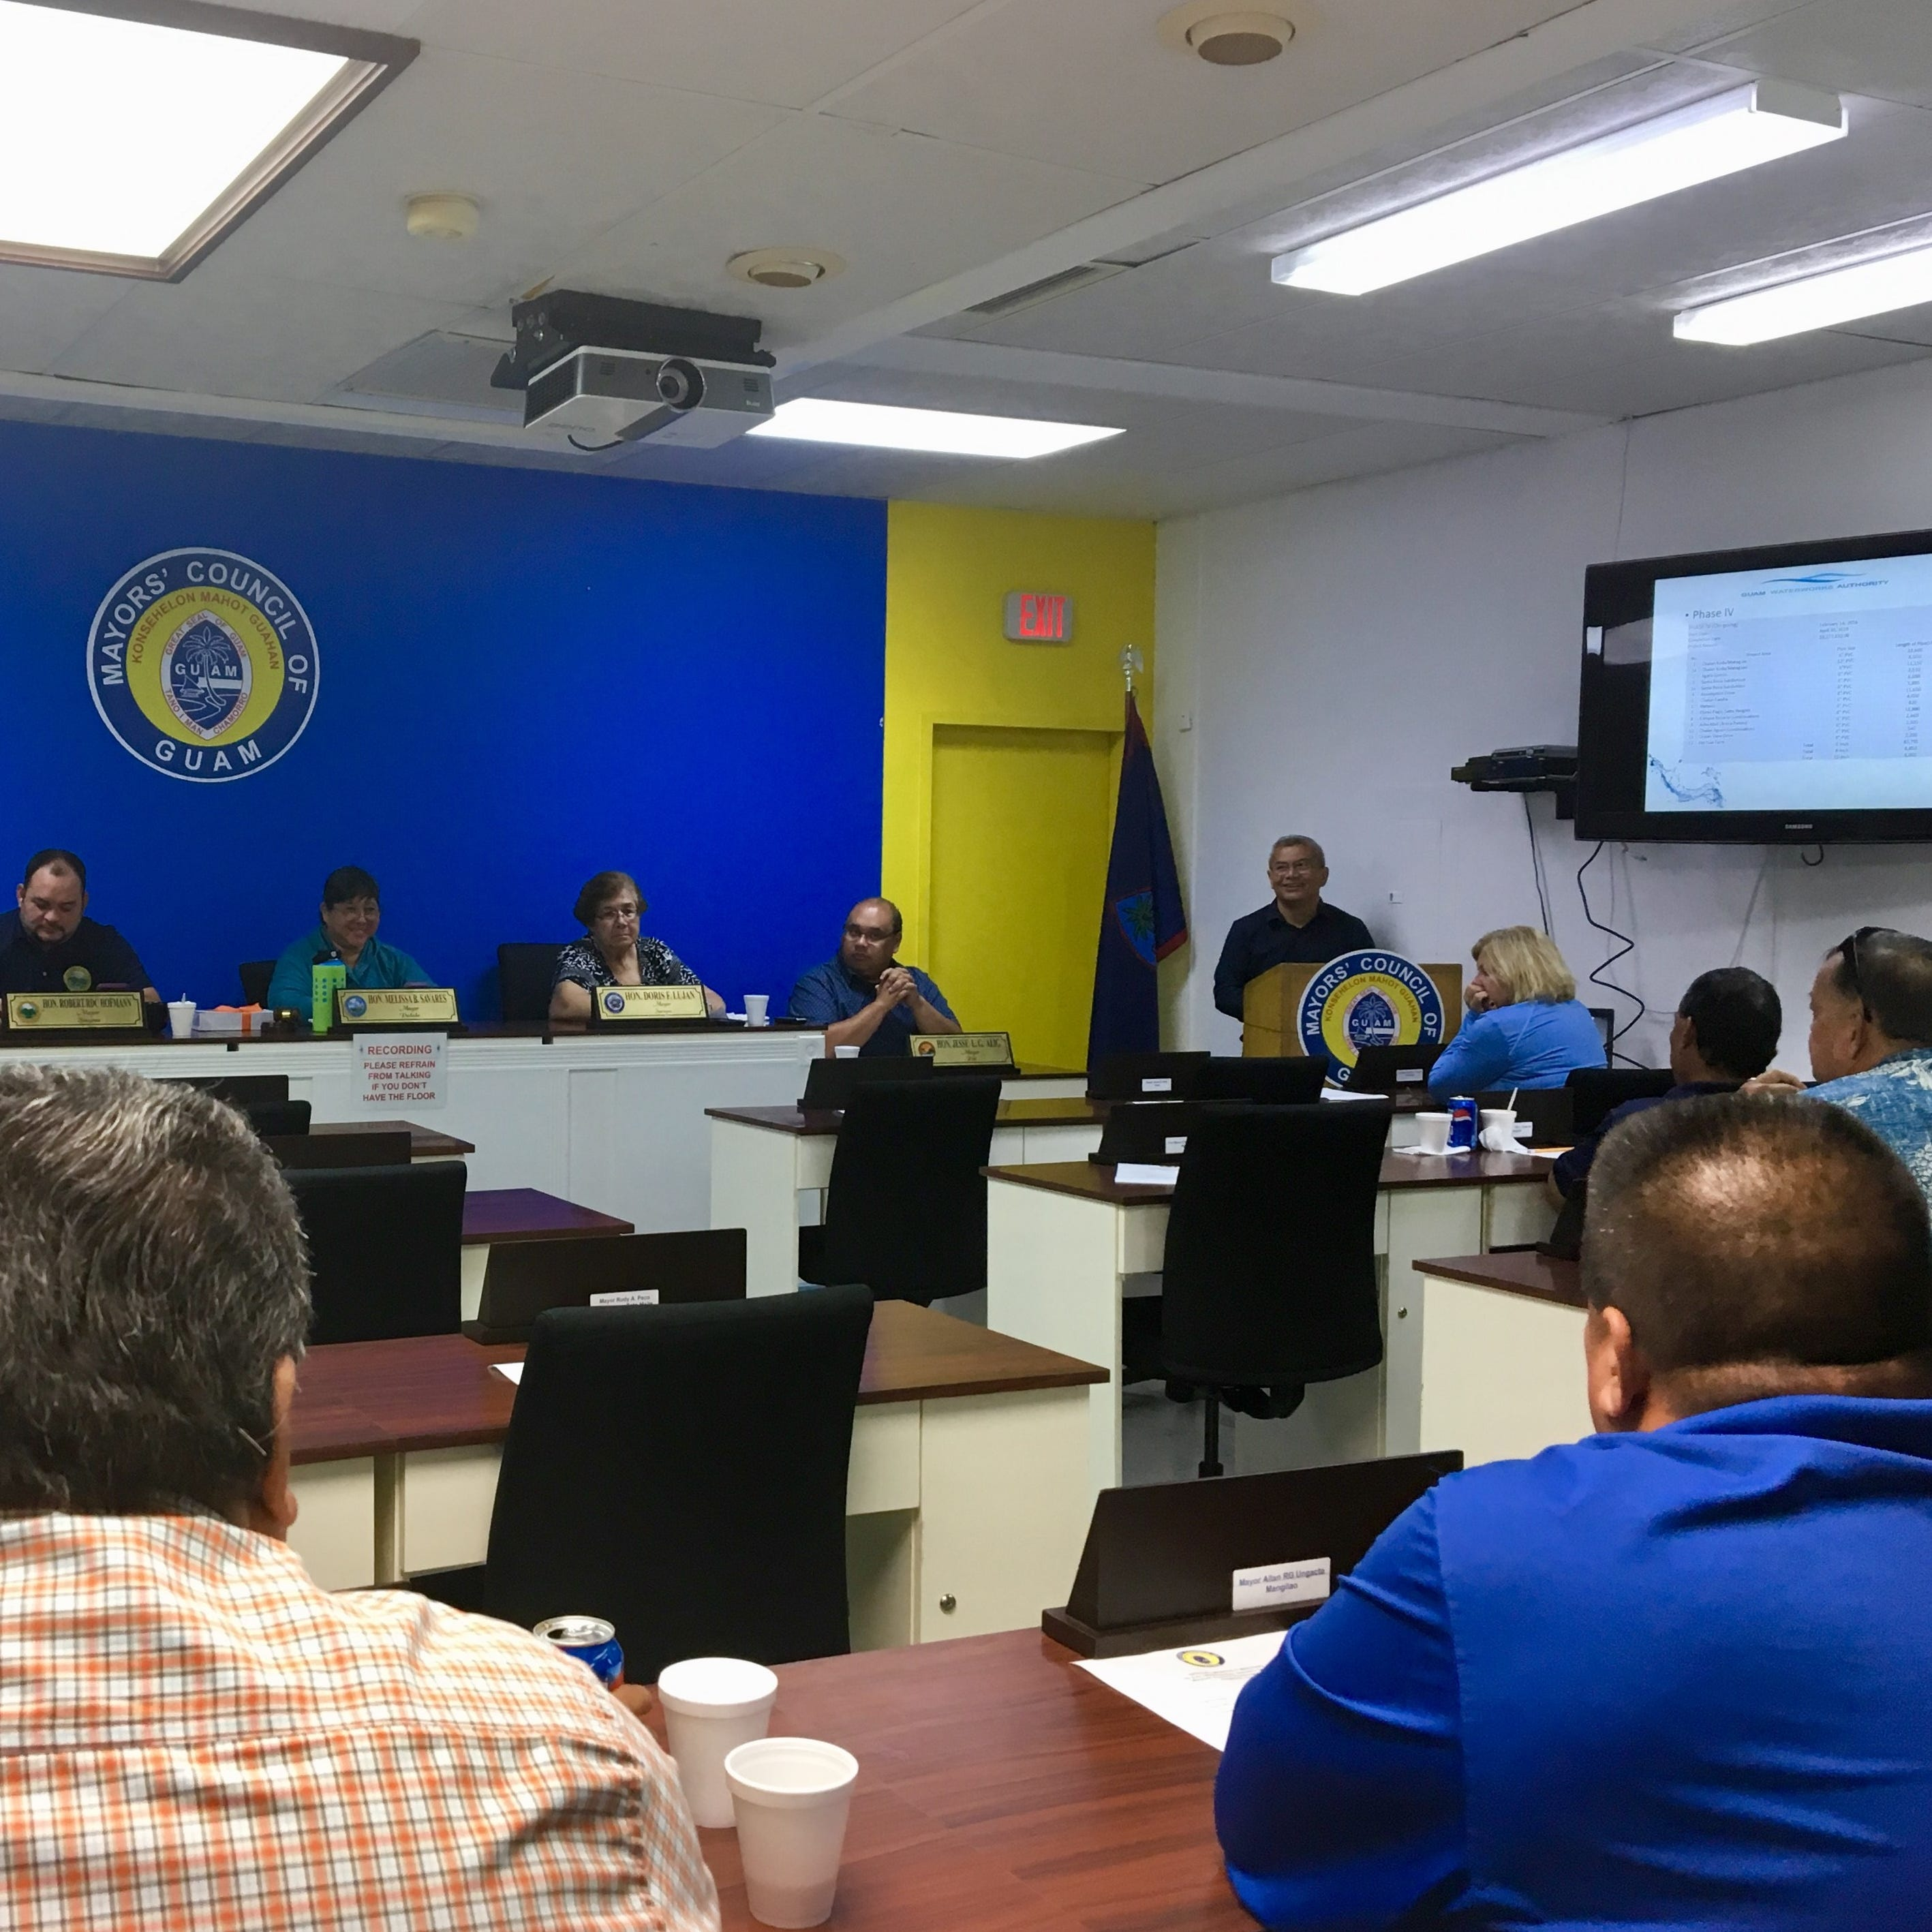 Guam's mayors announce Village News for February 23, 2019